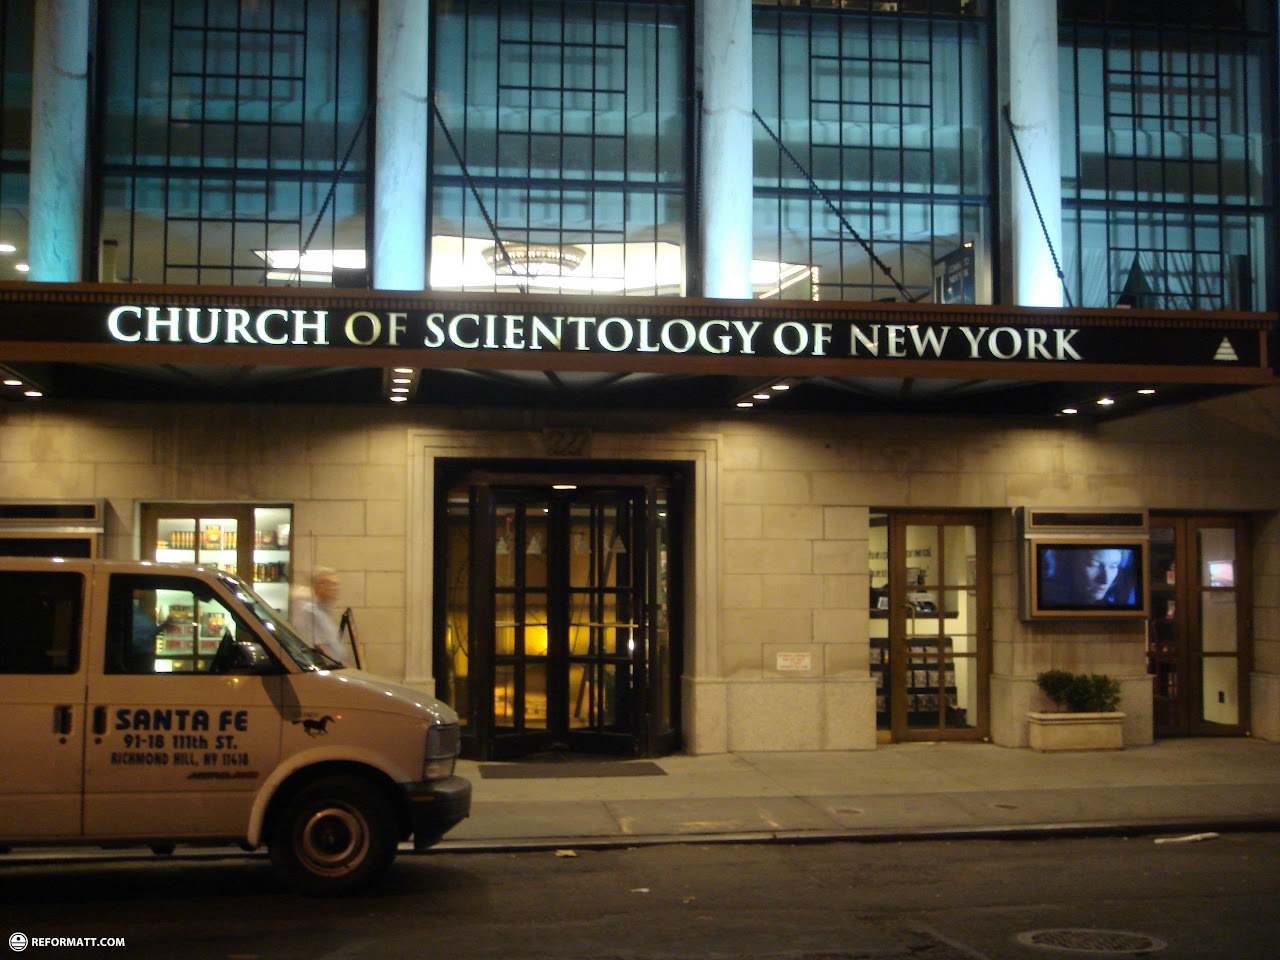 Scientology and celebrities - Wikipedia